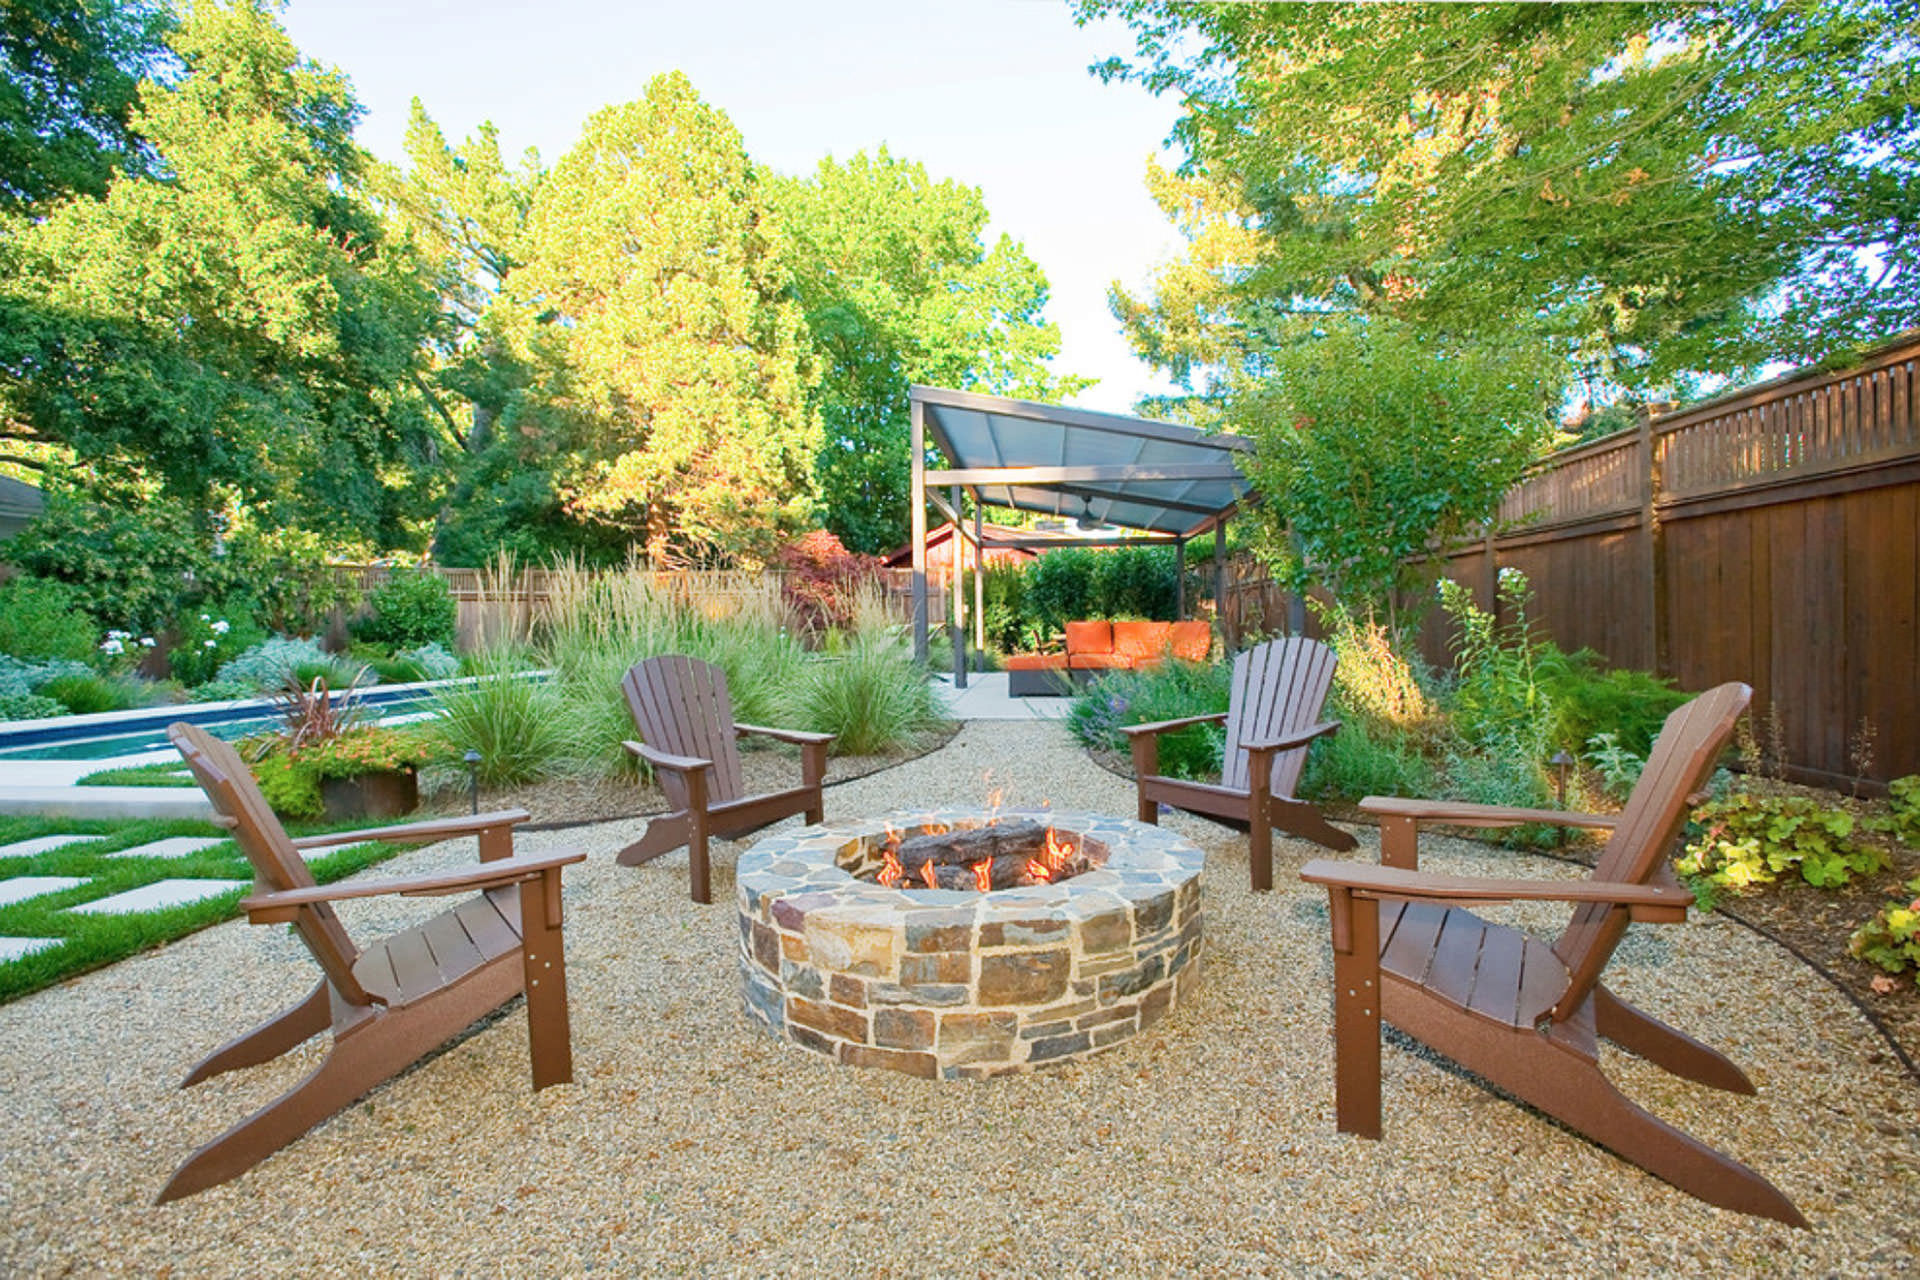 Outdoor patio ideas on pinterest pea gravel patio pea for Outdoor garden design